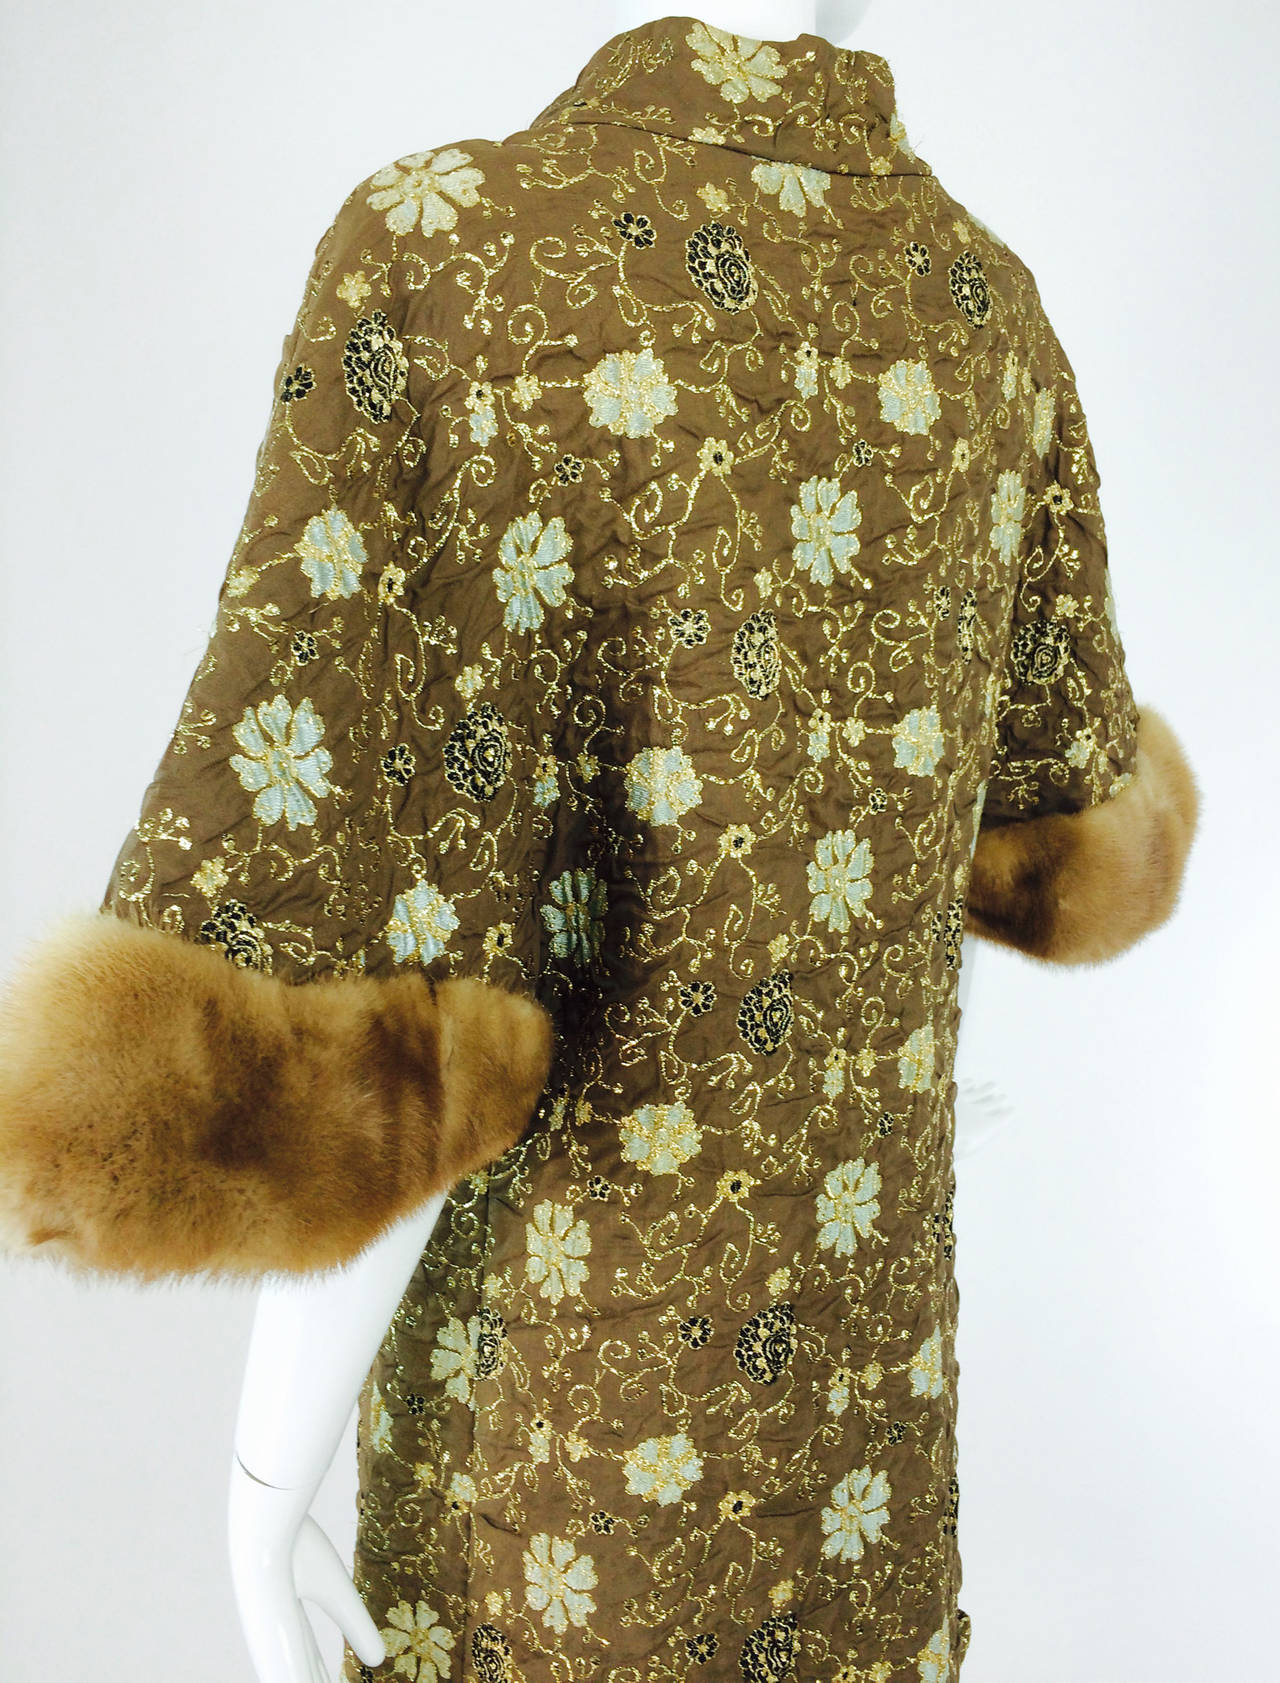 Bob Bugnand for Sam Friedlander mink cuff embroidered evening coat 1960s 8